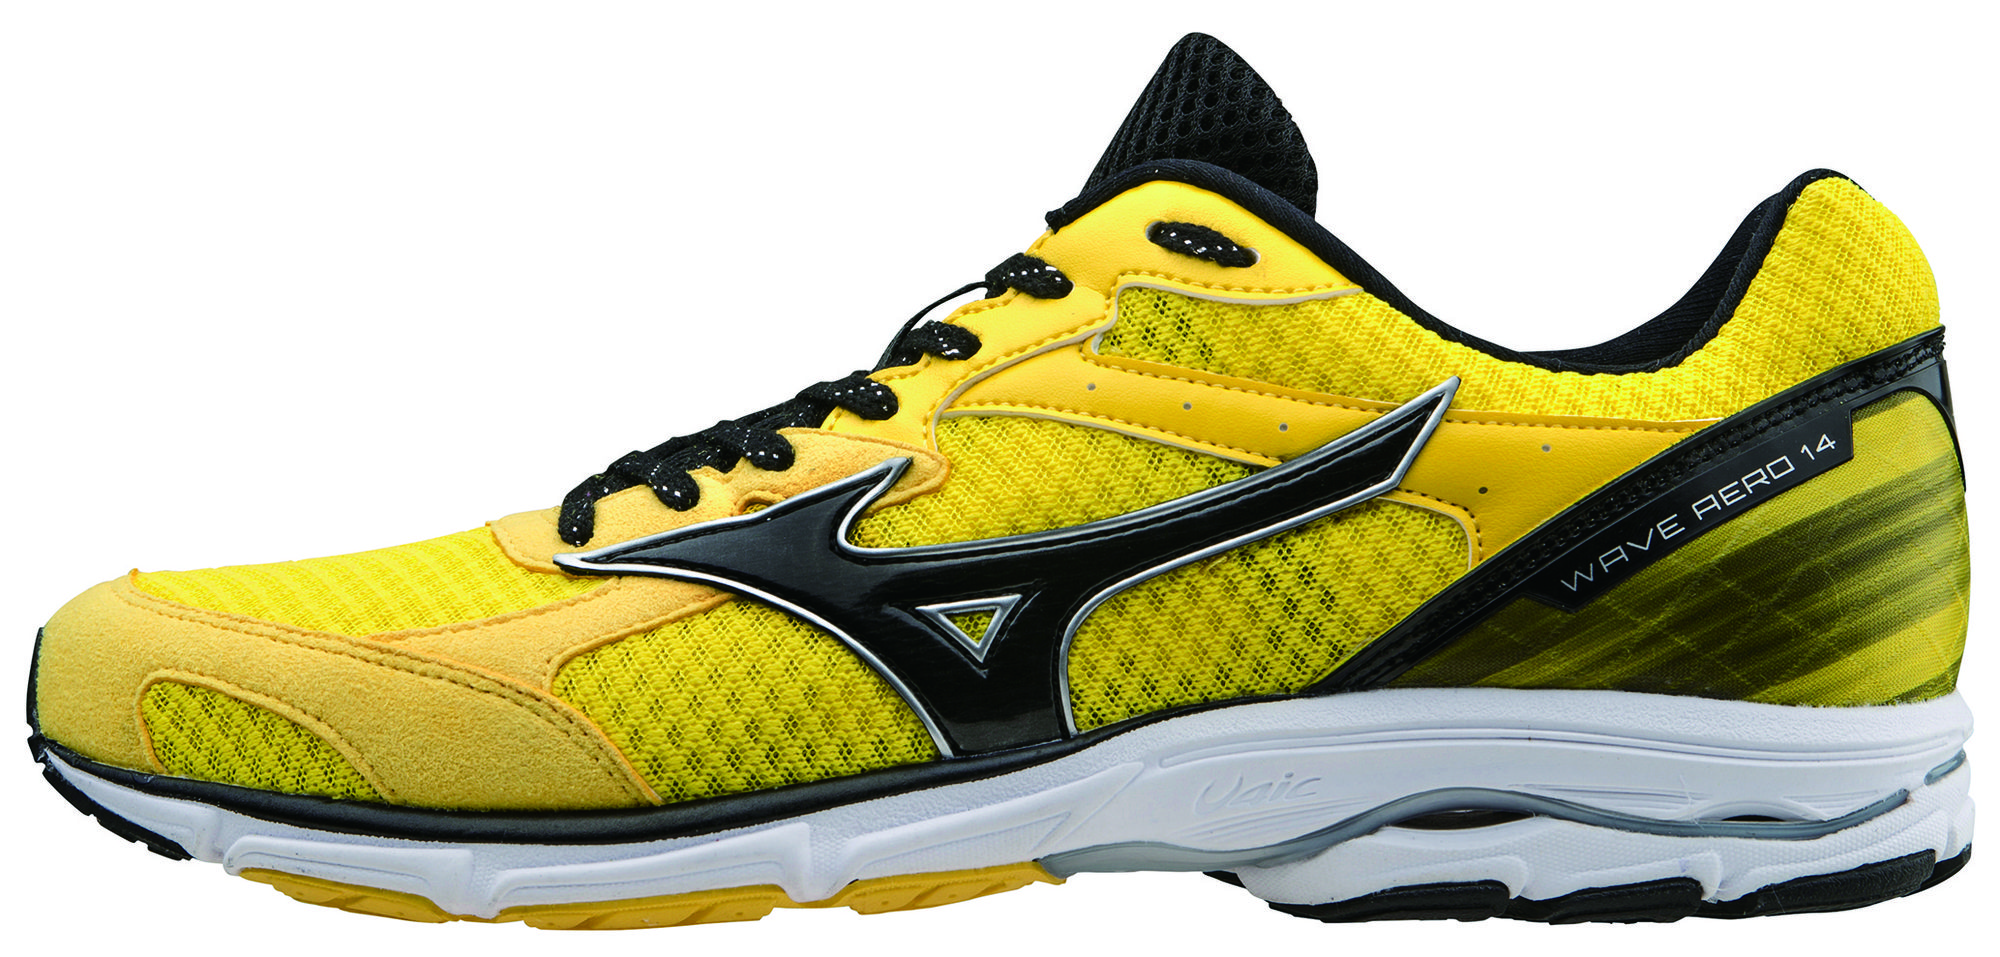 Mizuno Wave Aero 14 in Gelb